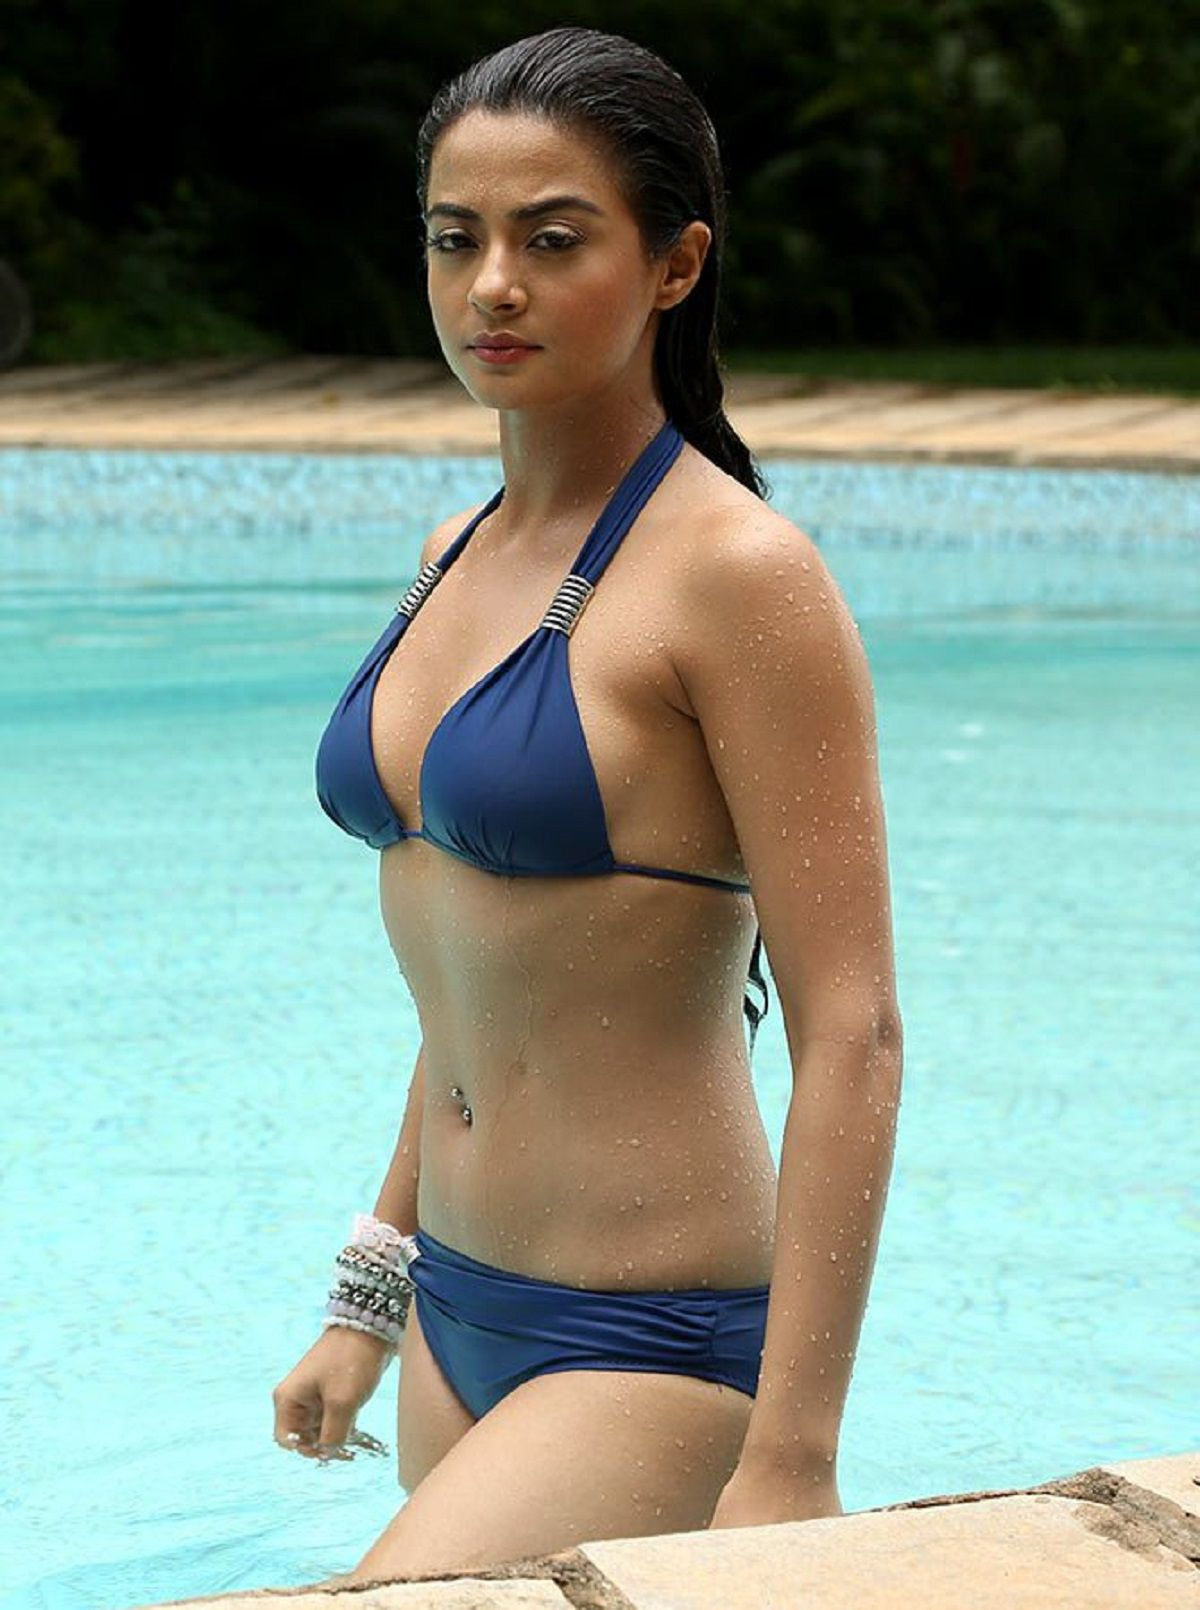 Hottest Bikini Girls on Television